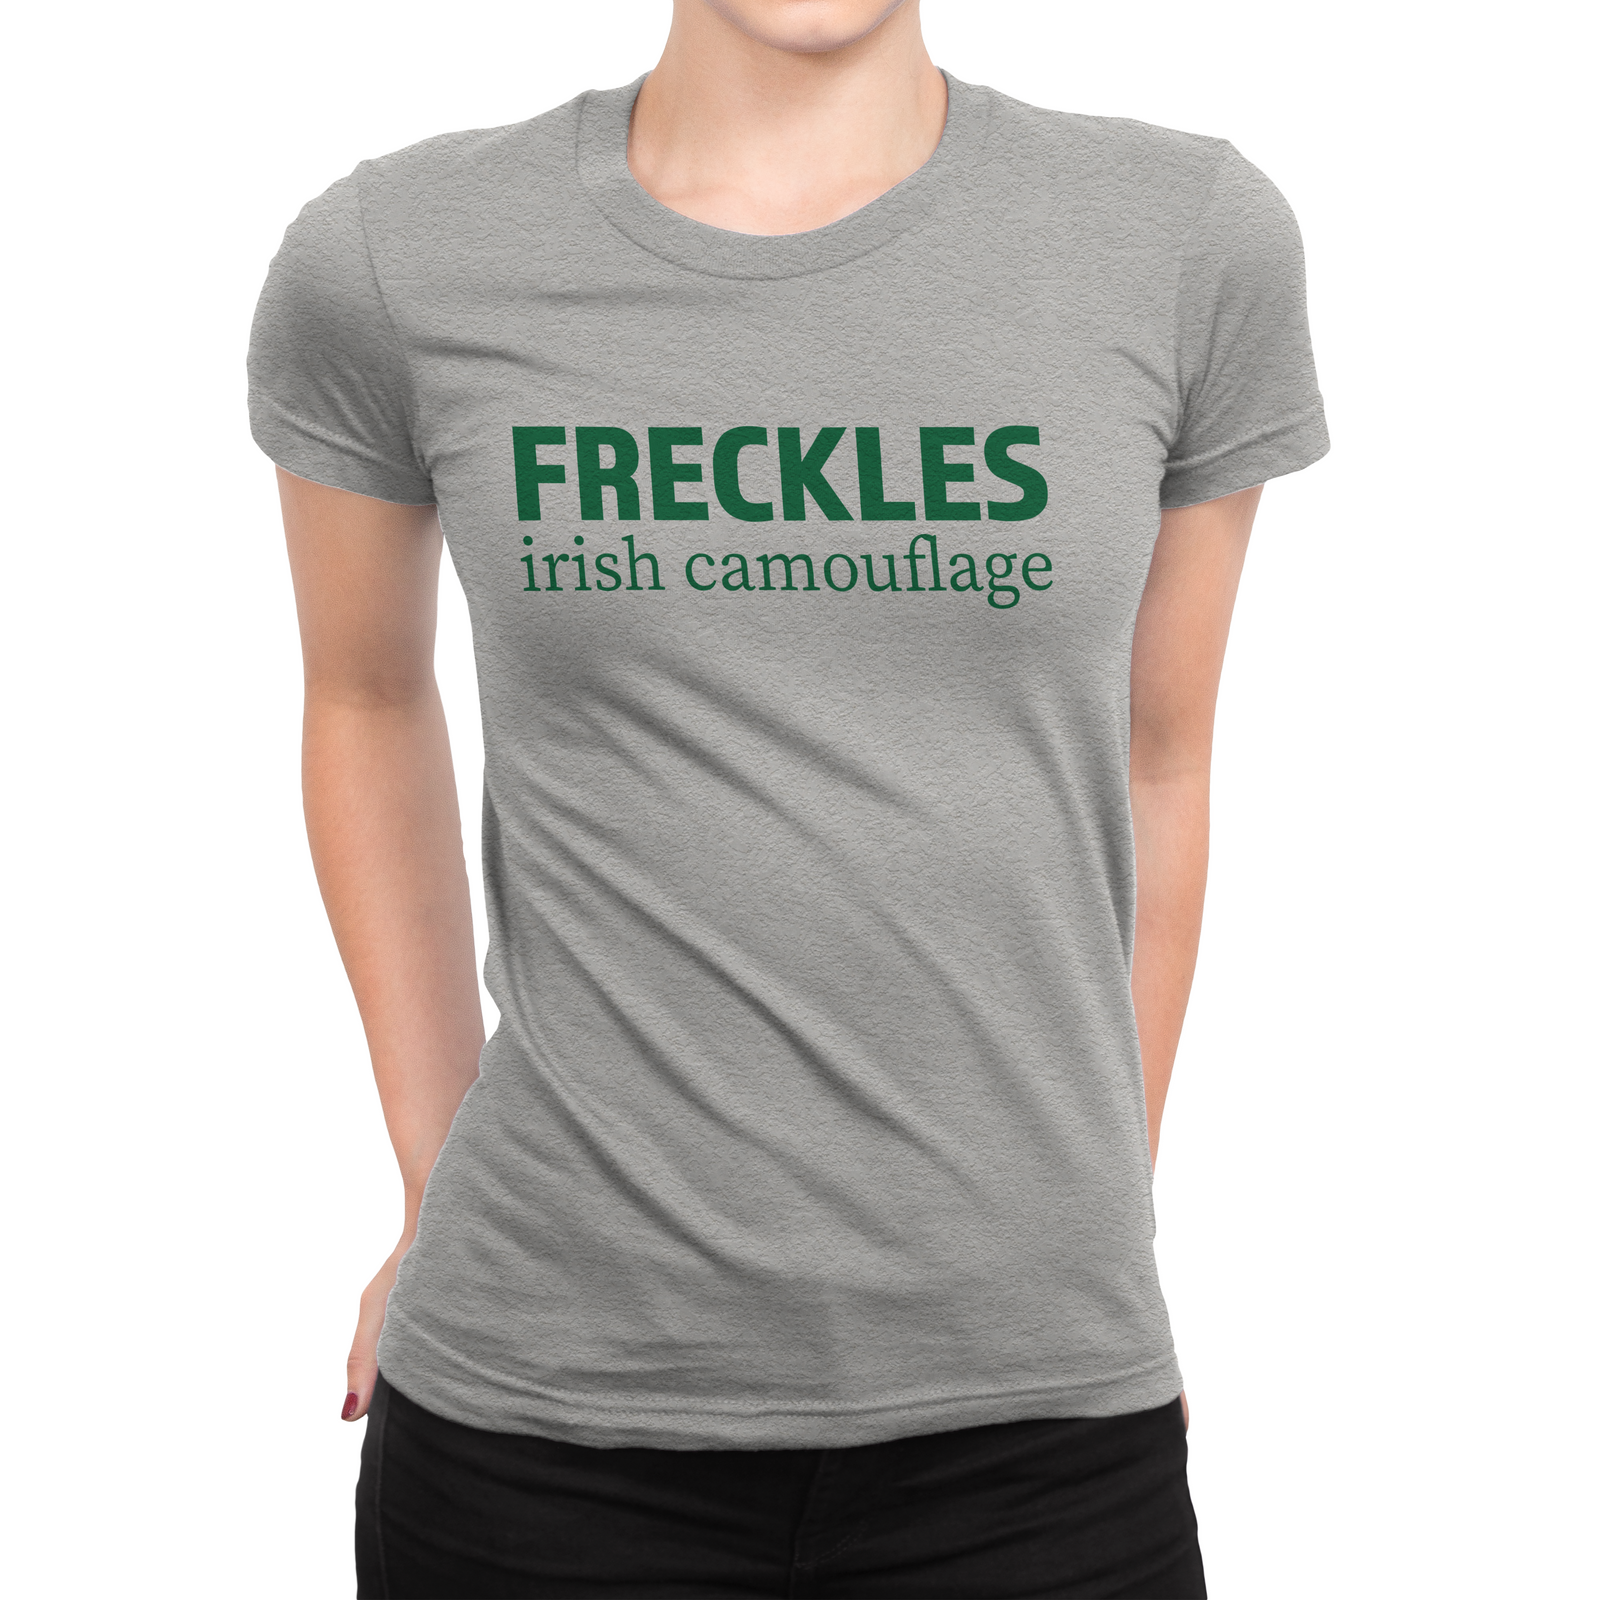 Freckles Irish Camouflage Women's T-shirt